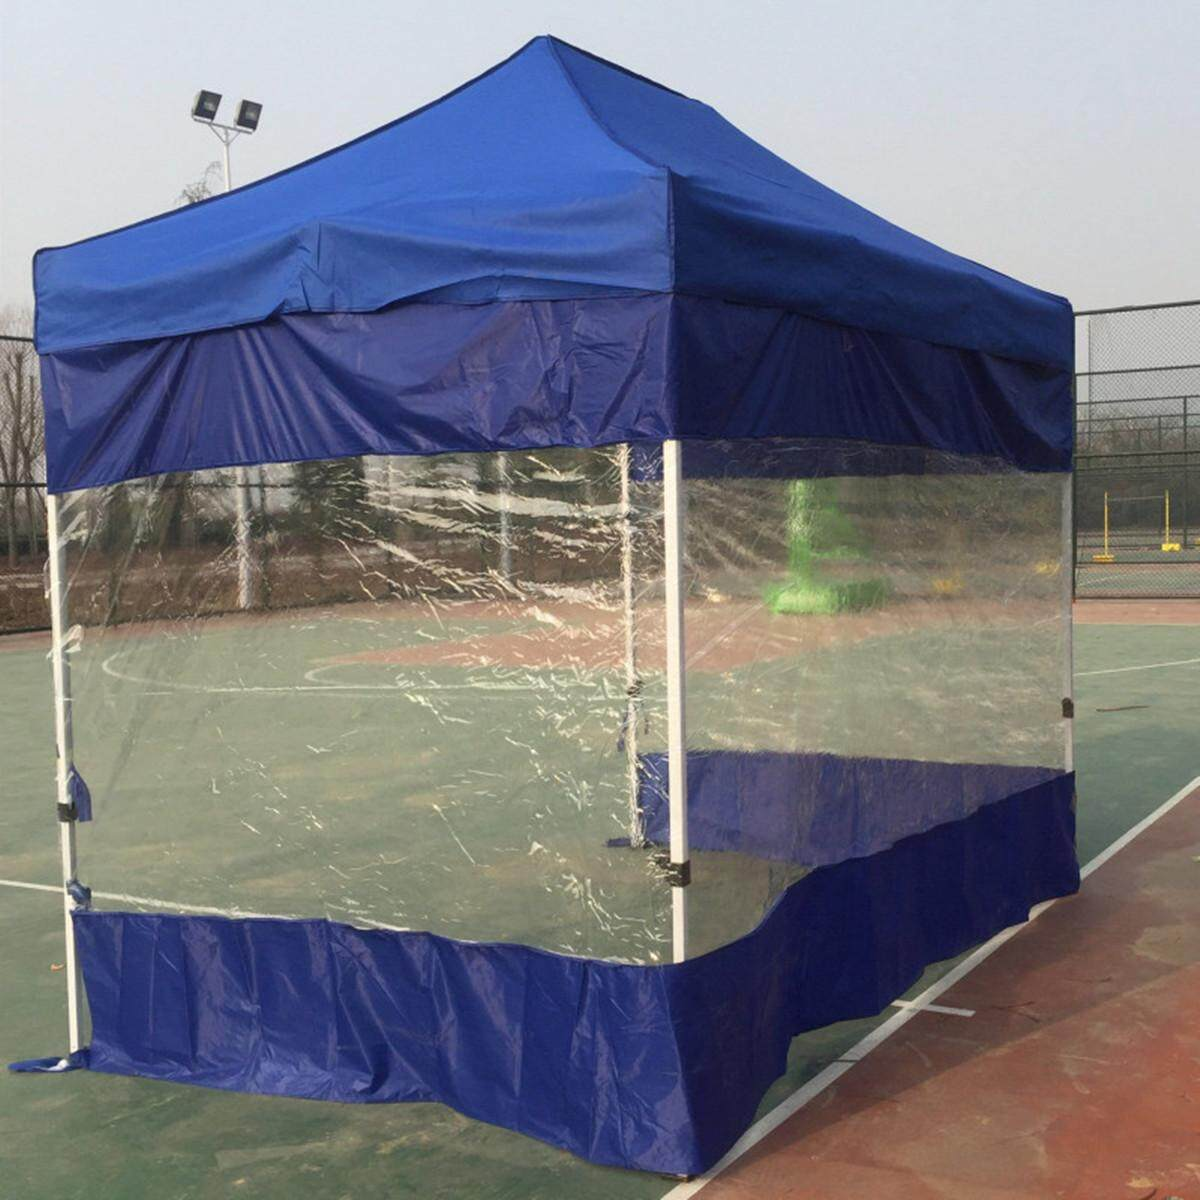 Tents for sale - Outdoor Tents Online Deals & Prices in Philippines